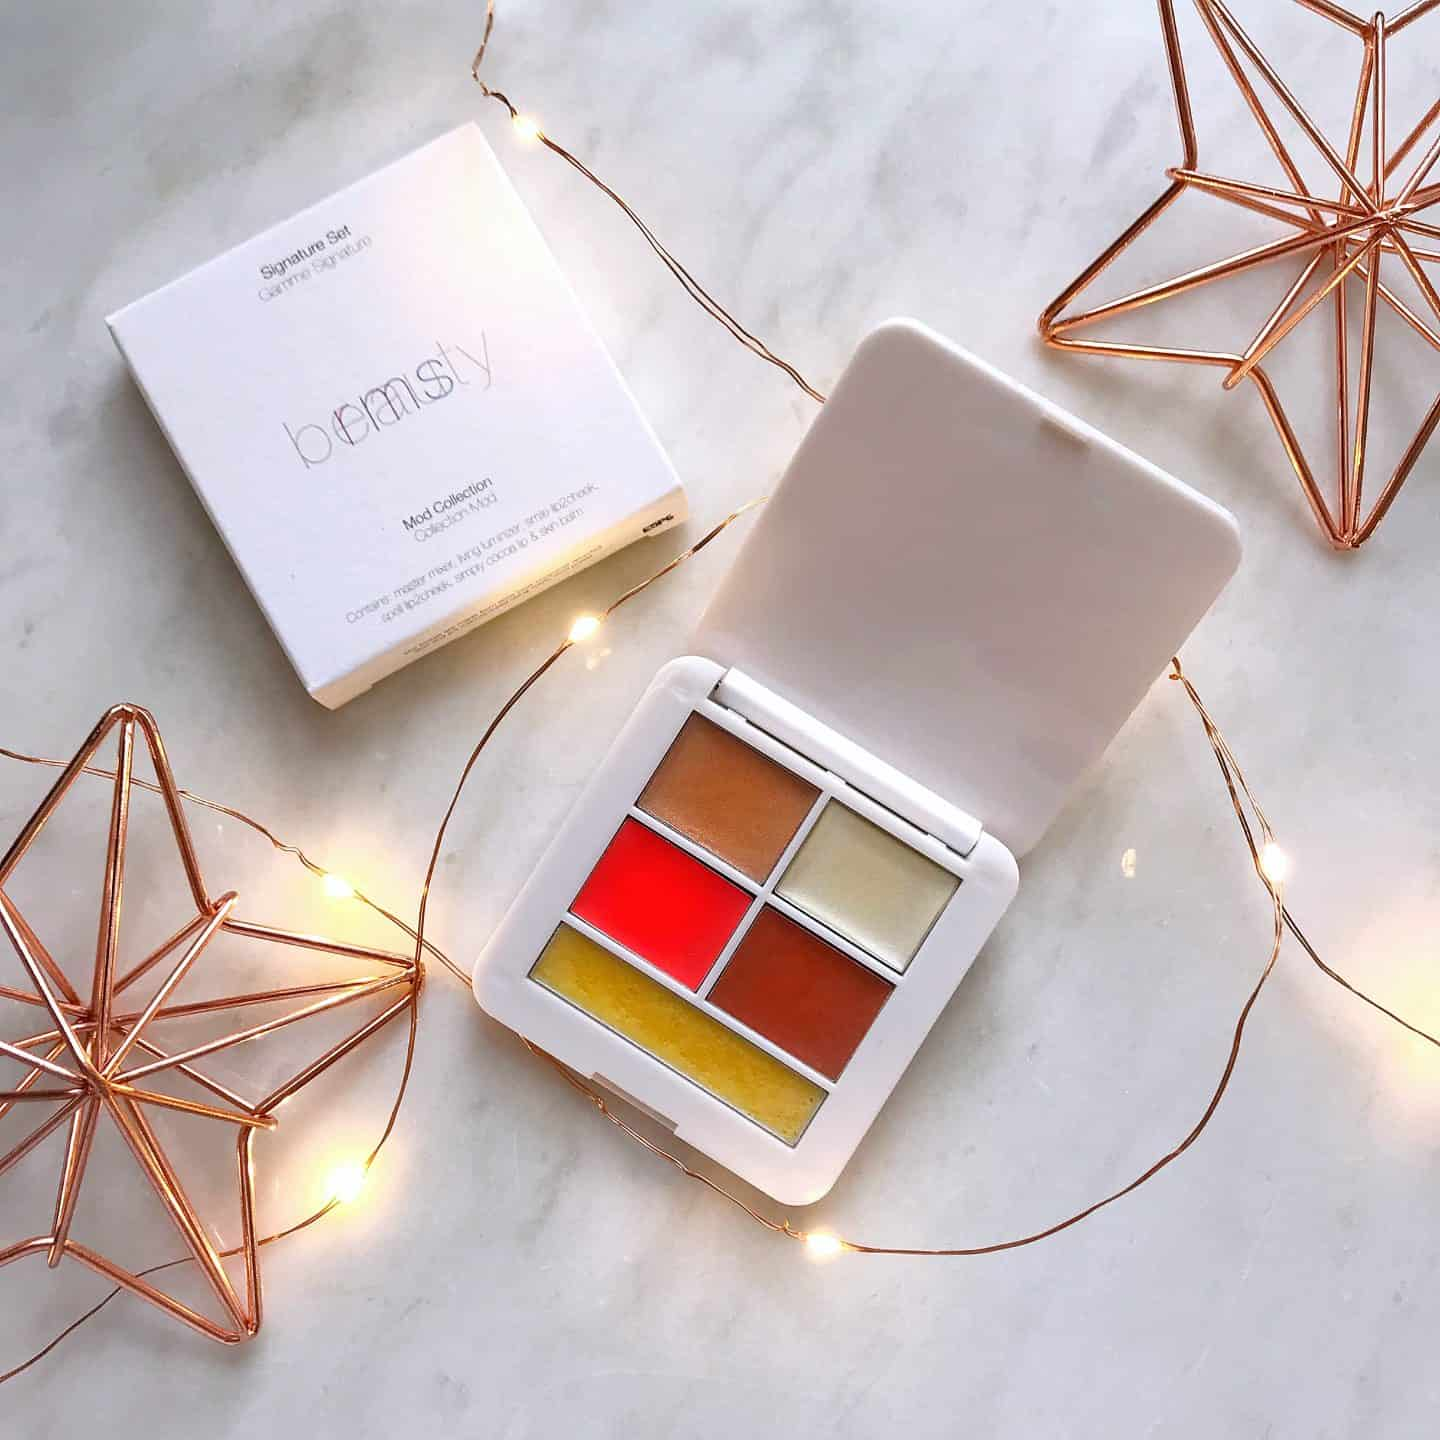 RMS Beauty Signature Set in Mod is perfect for Christmas and New Year